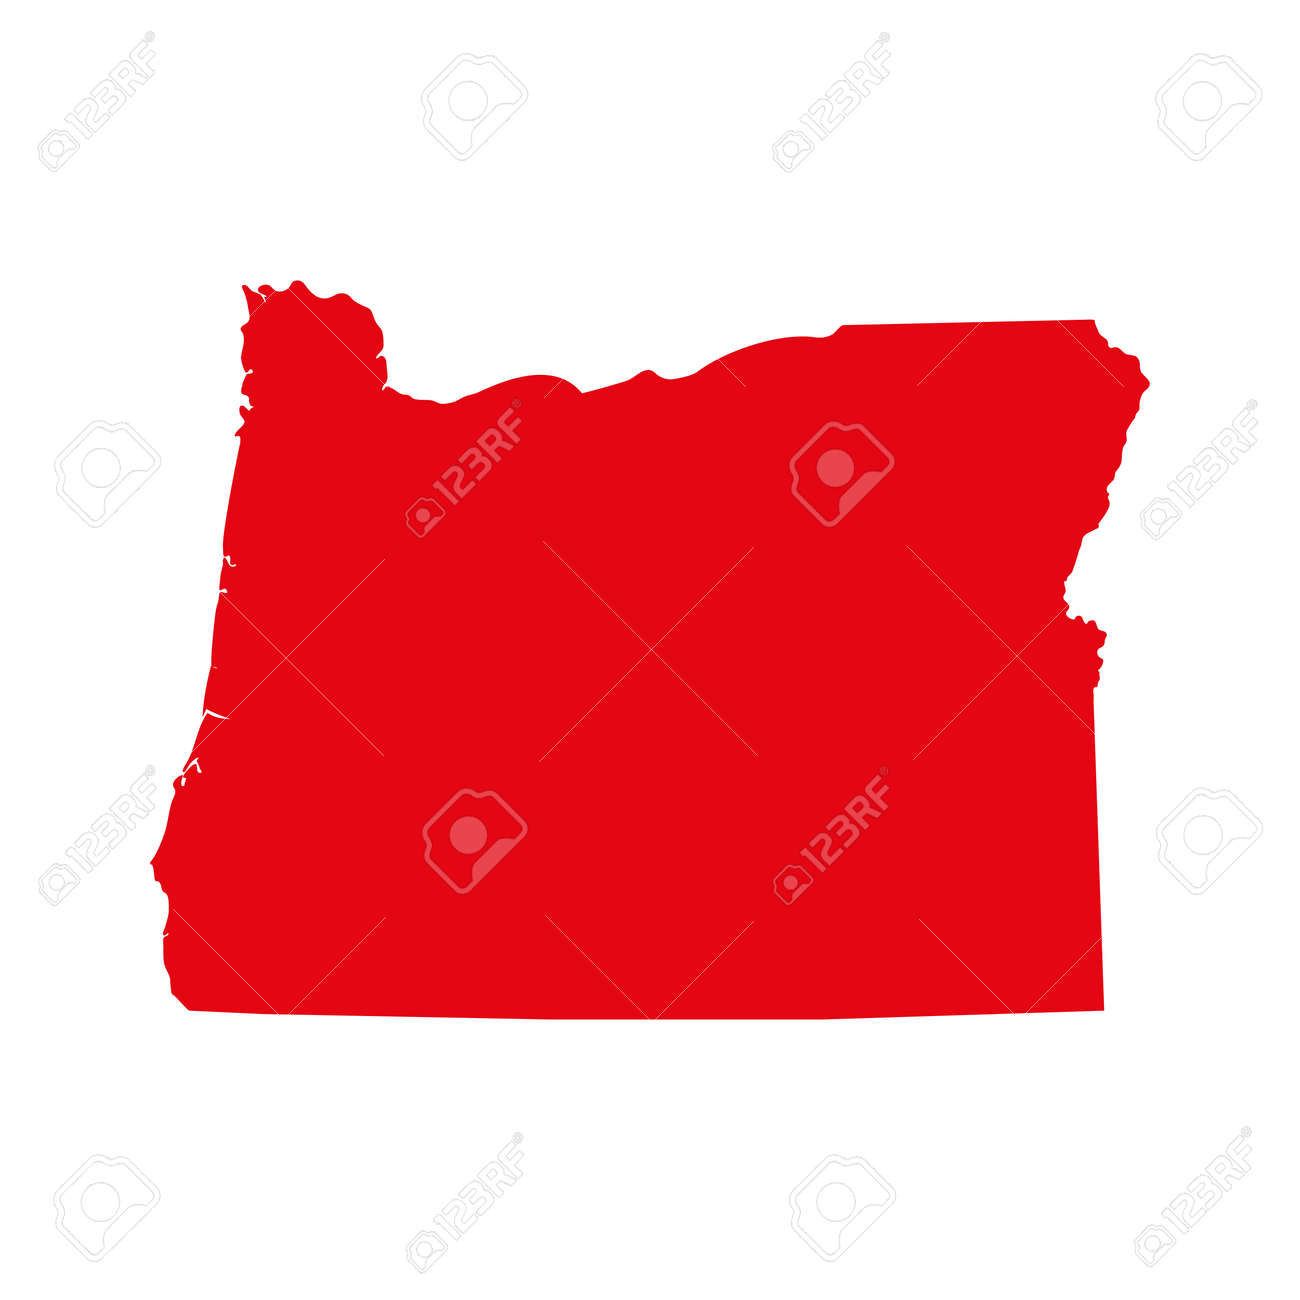 A Map Of The U.S. State Of Oregon Isolated On Plain Background ... S In Oregon Map on